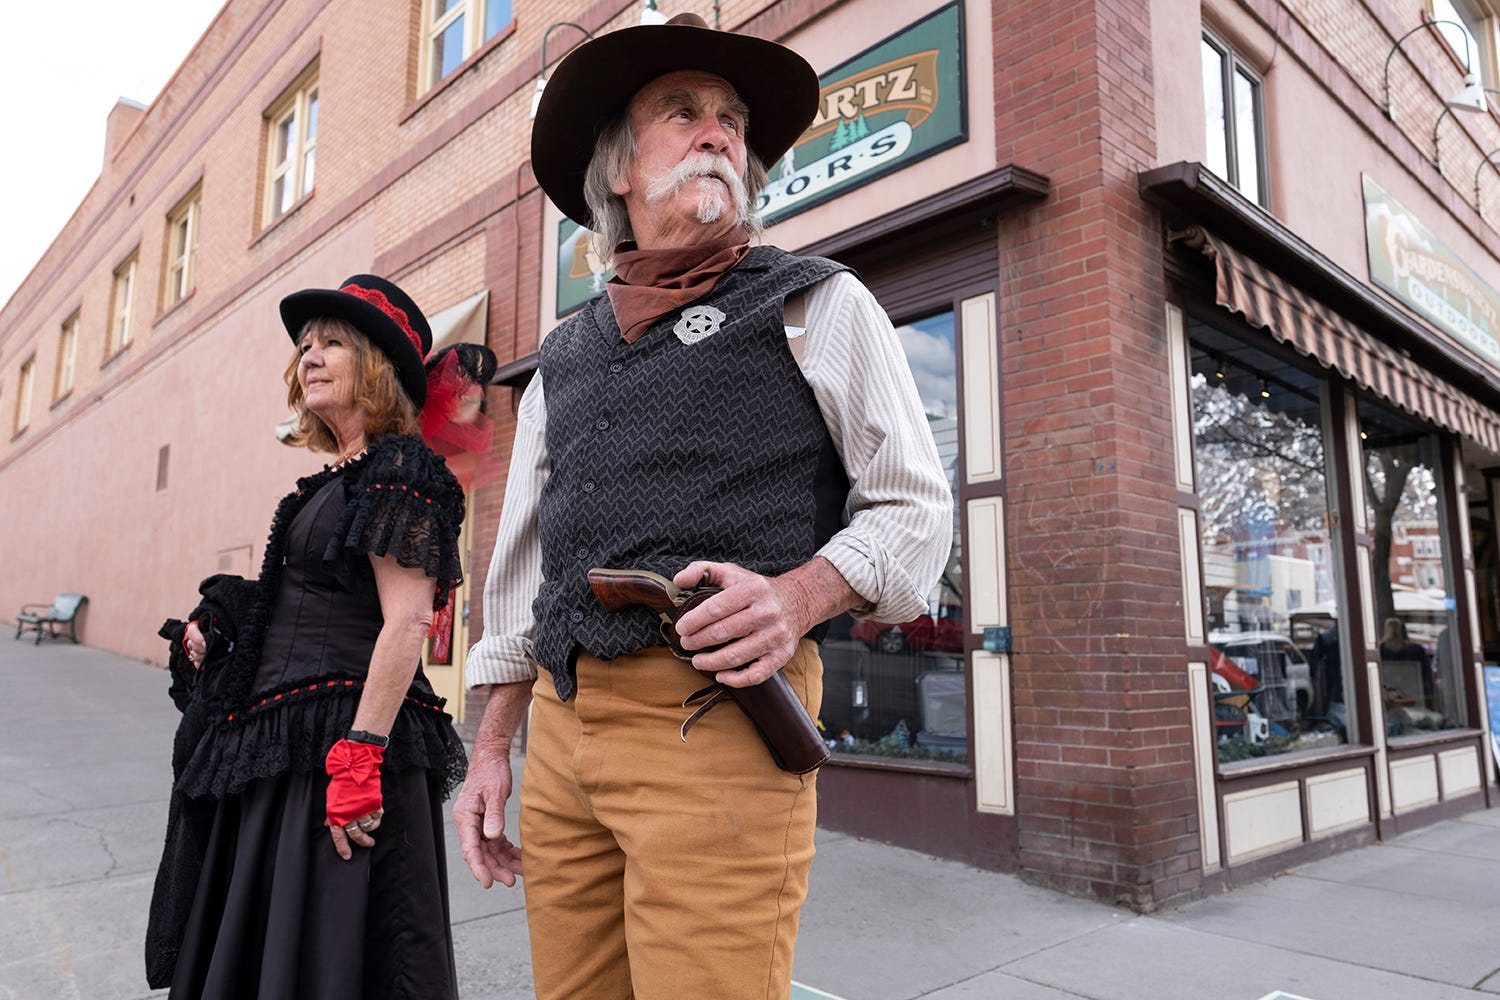 Durango's COVID 'Cowboy' rounds up spring break scofflaws, lines 'em up for shots 2